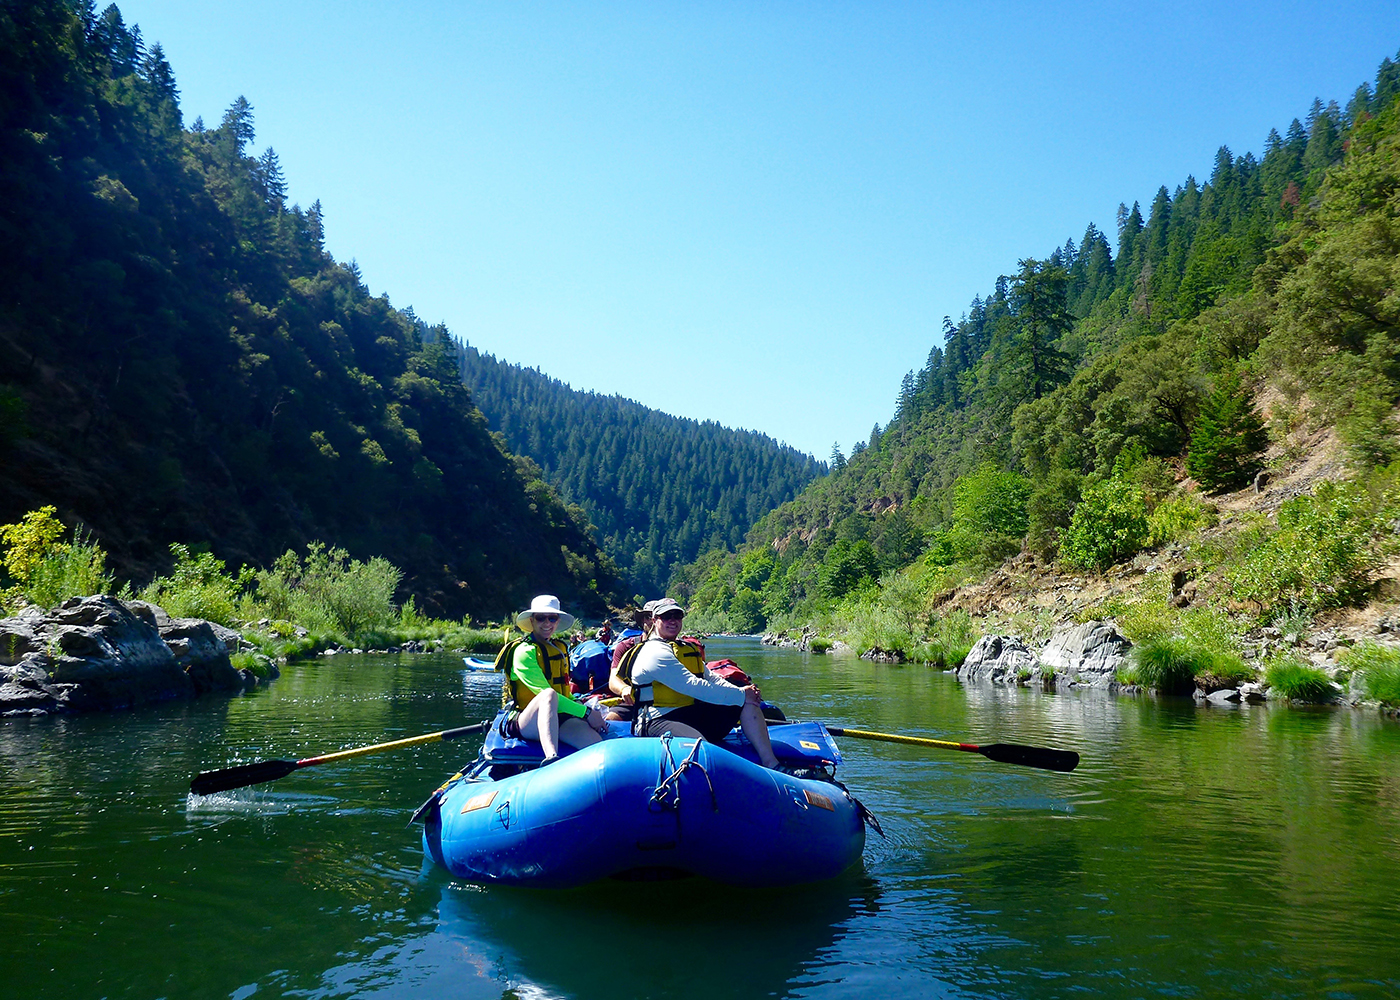 rogue river women This july, we're grabbing a paddle and taking a scenic journey by raft down the federally-protected rogue river in oregon on a segment of our pacific northwest: redwoods, river rafting and crater lake adventure.